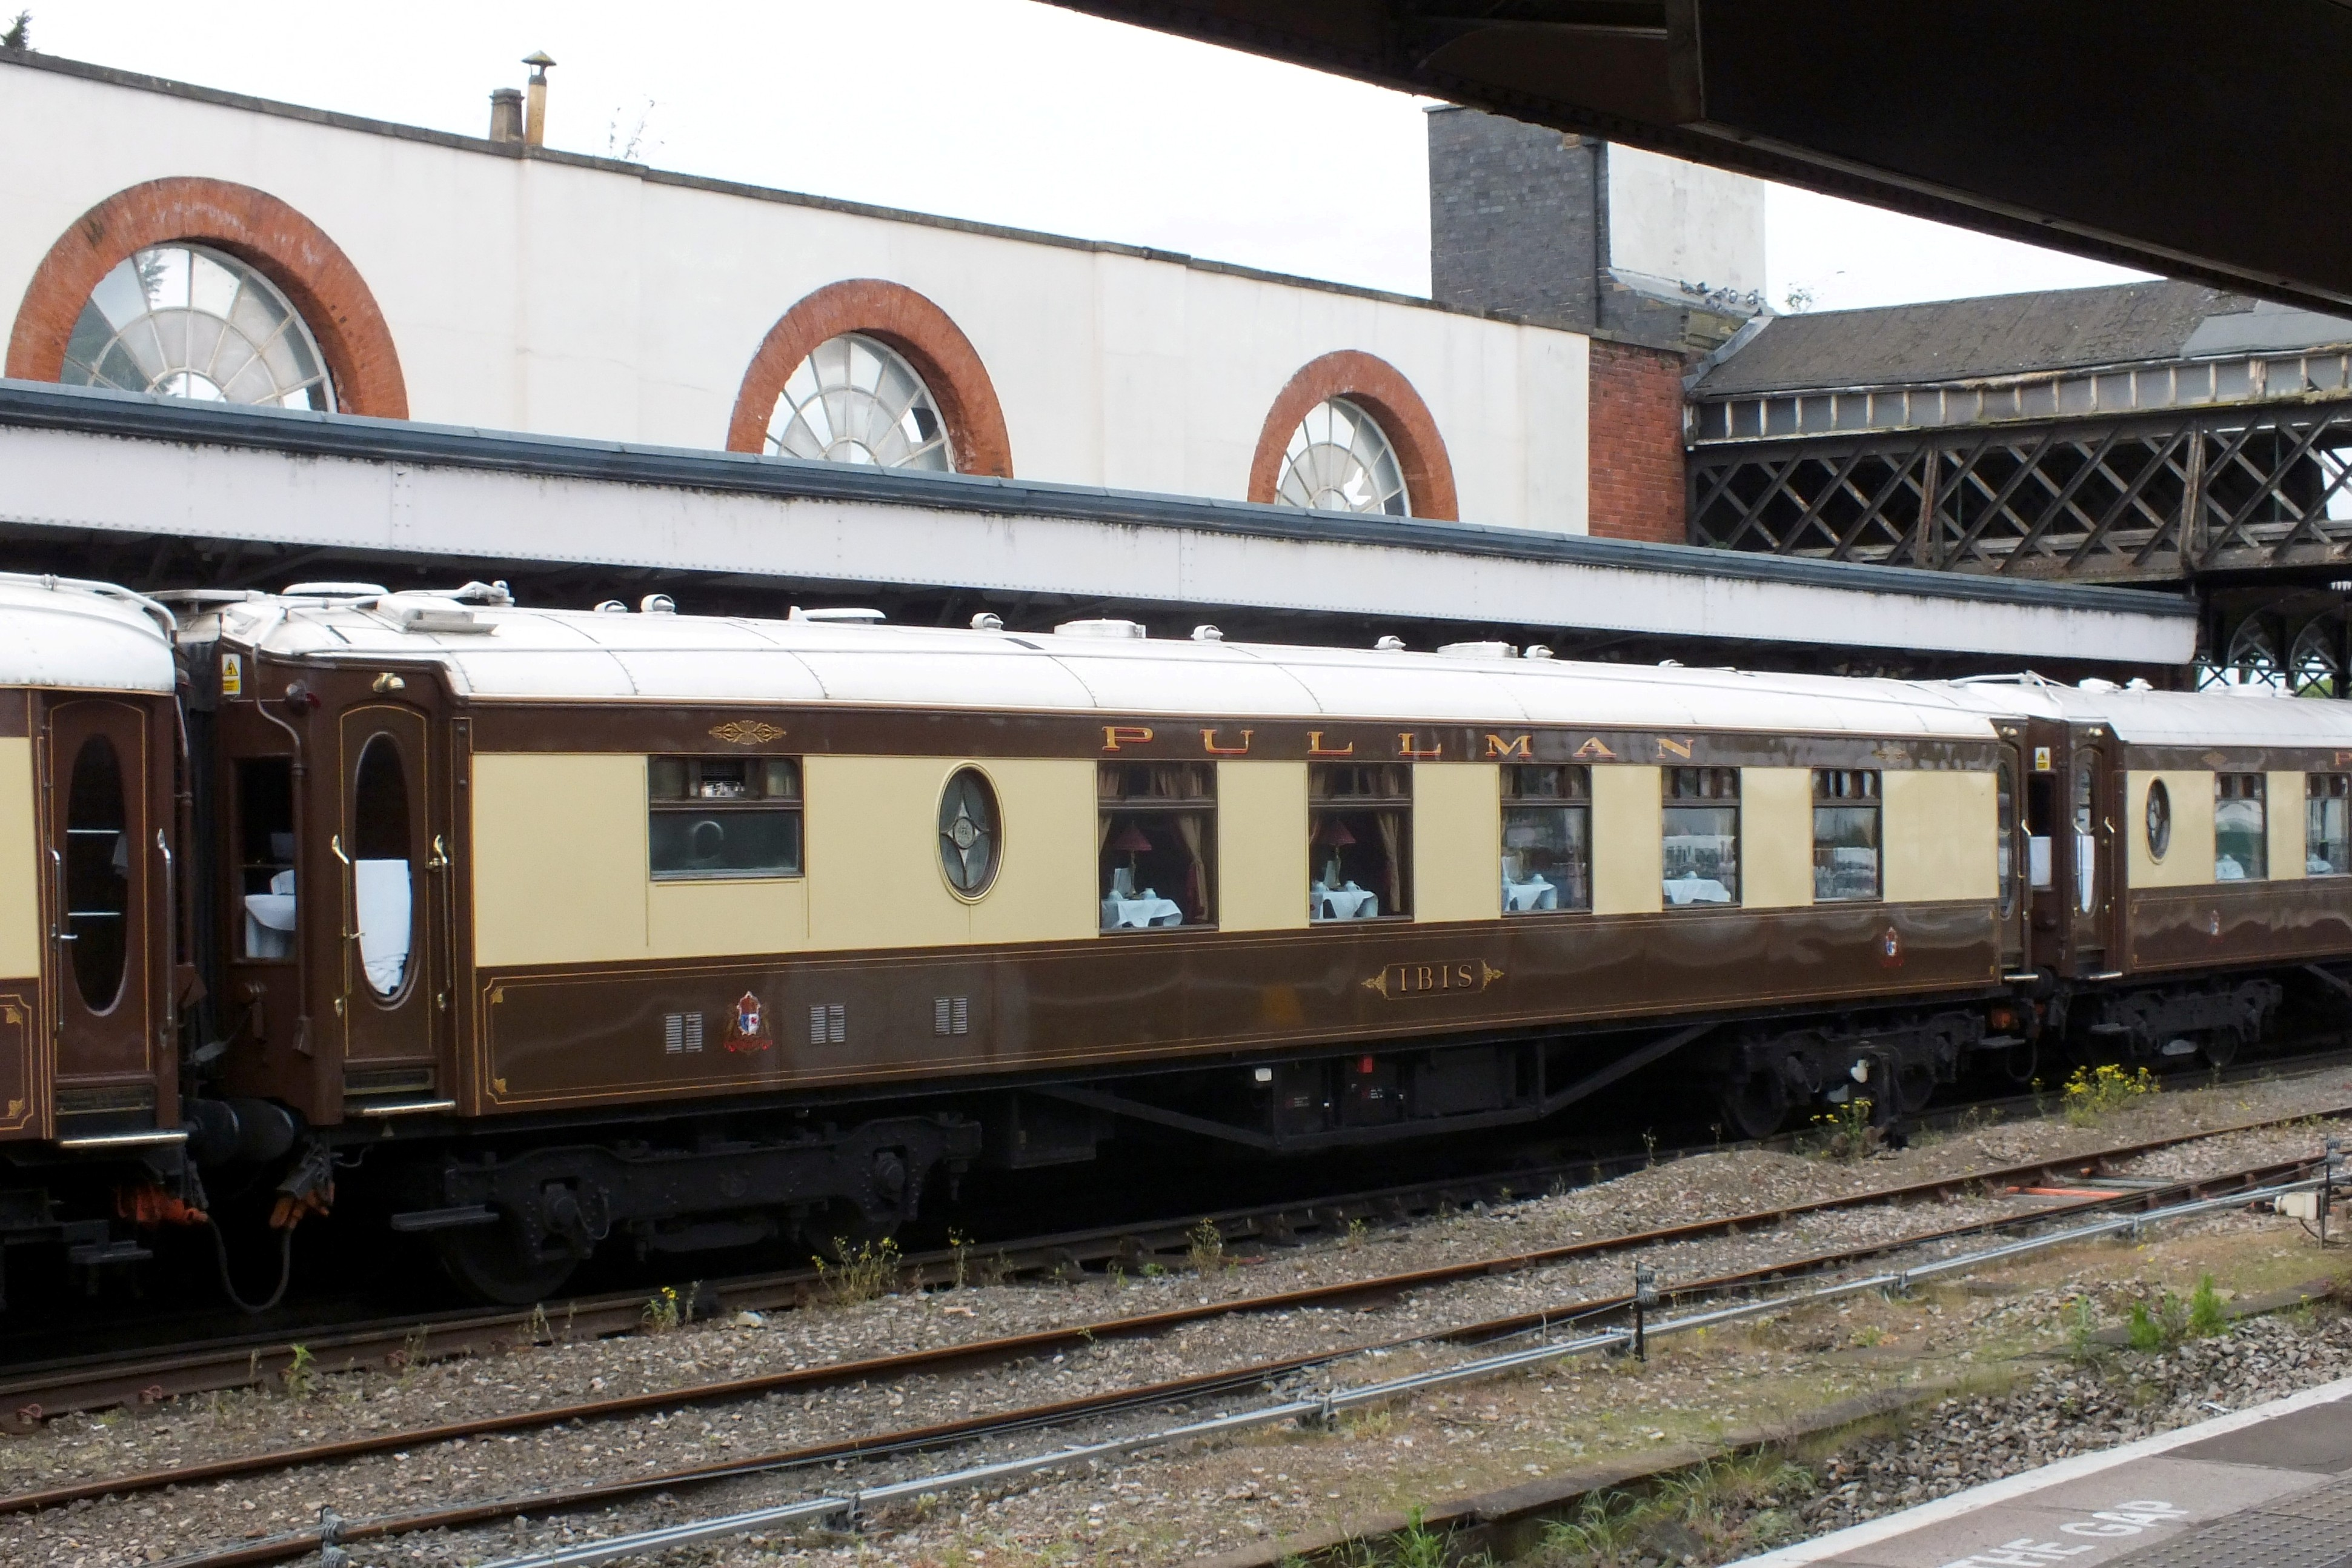 09 May 2018 Shrub Hill 124.jpg